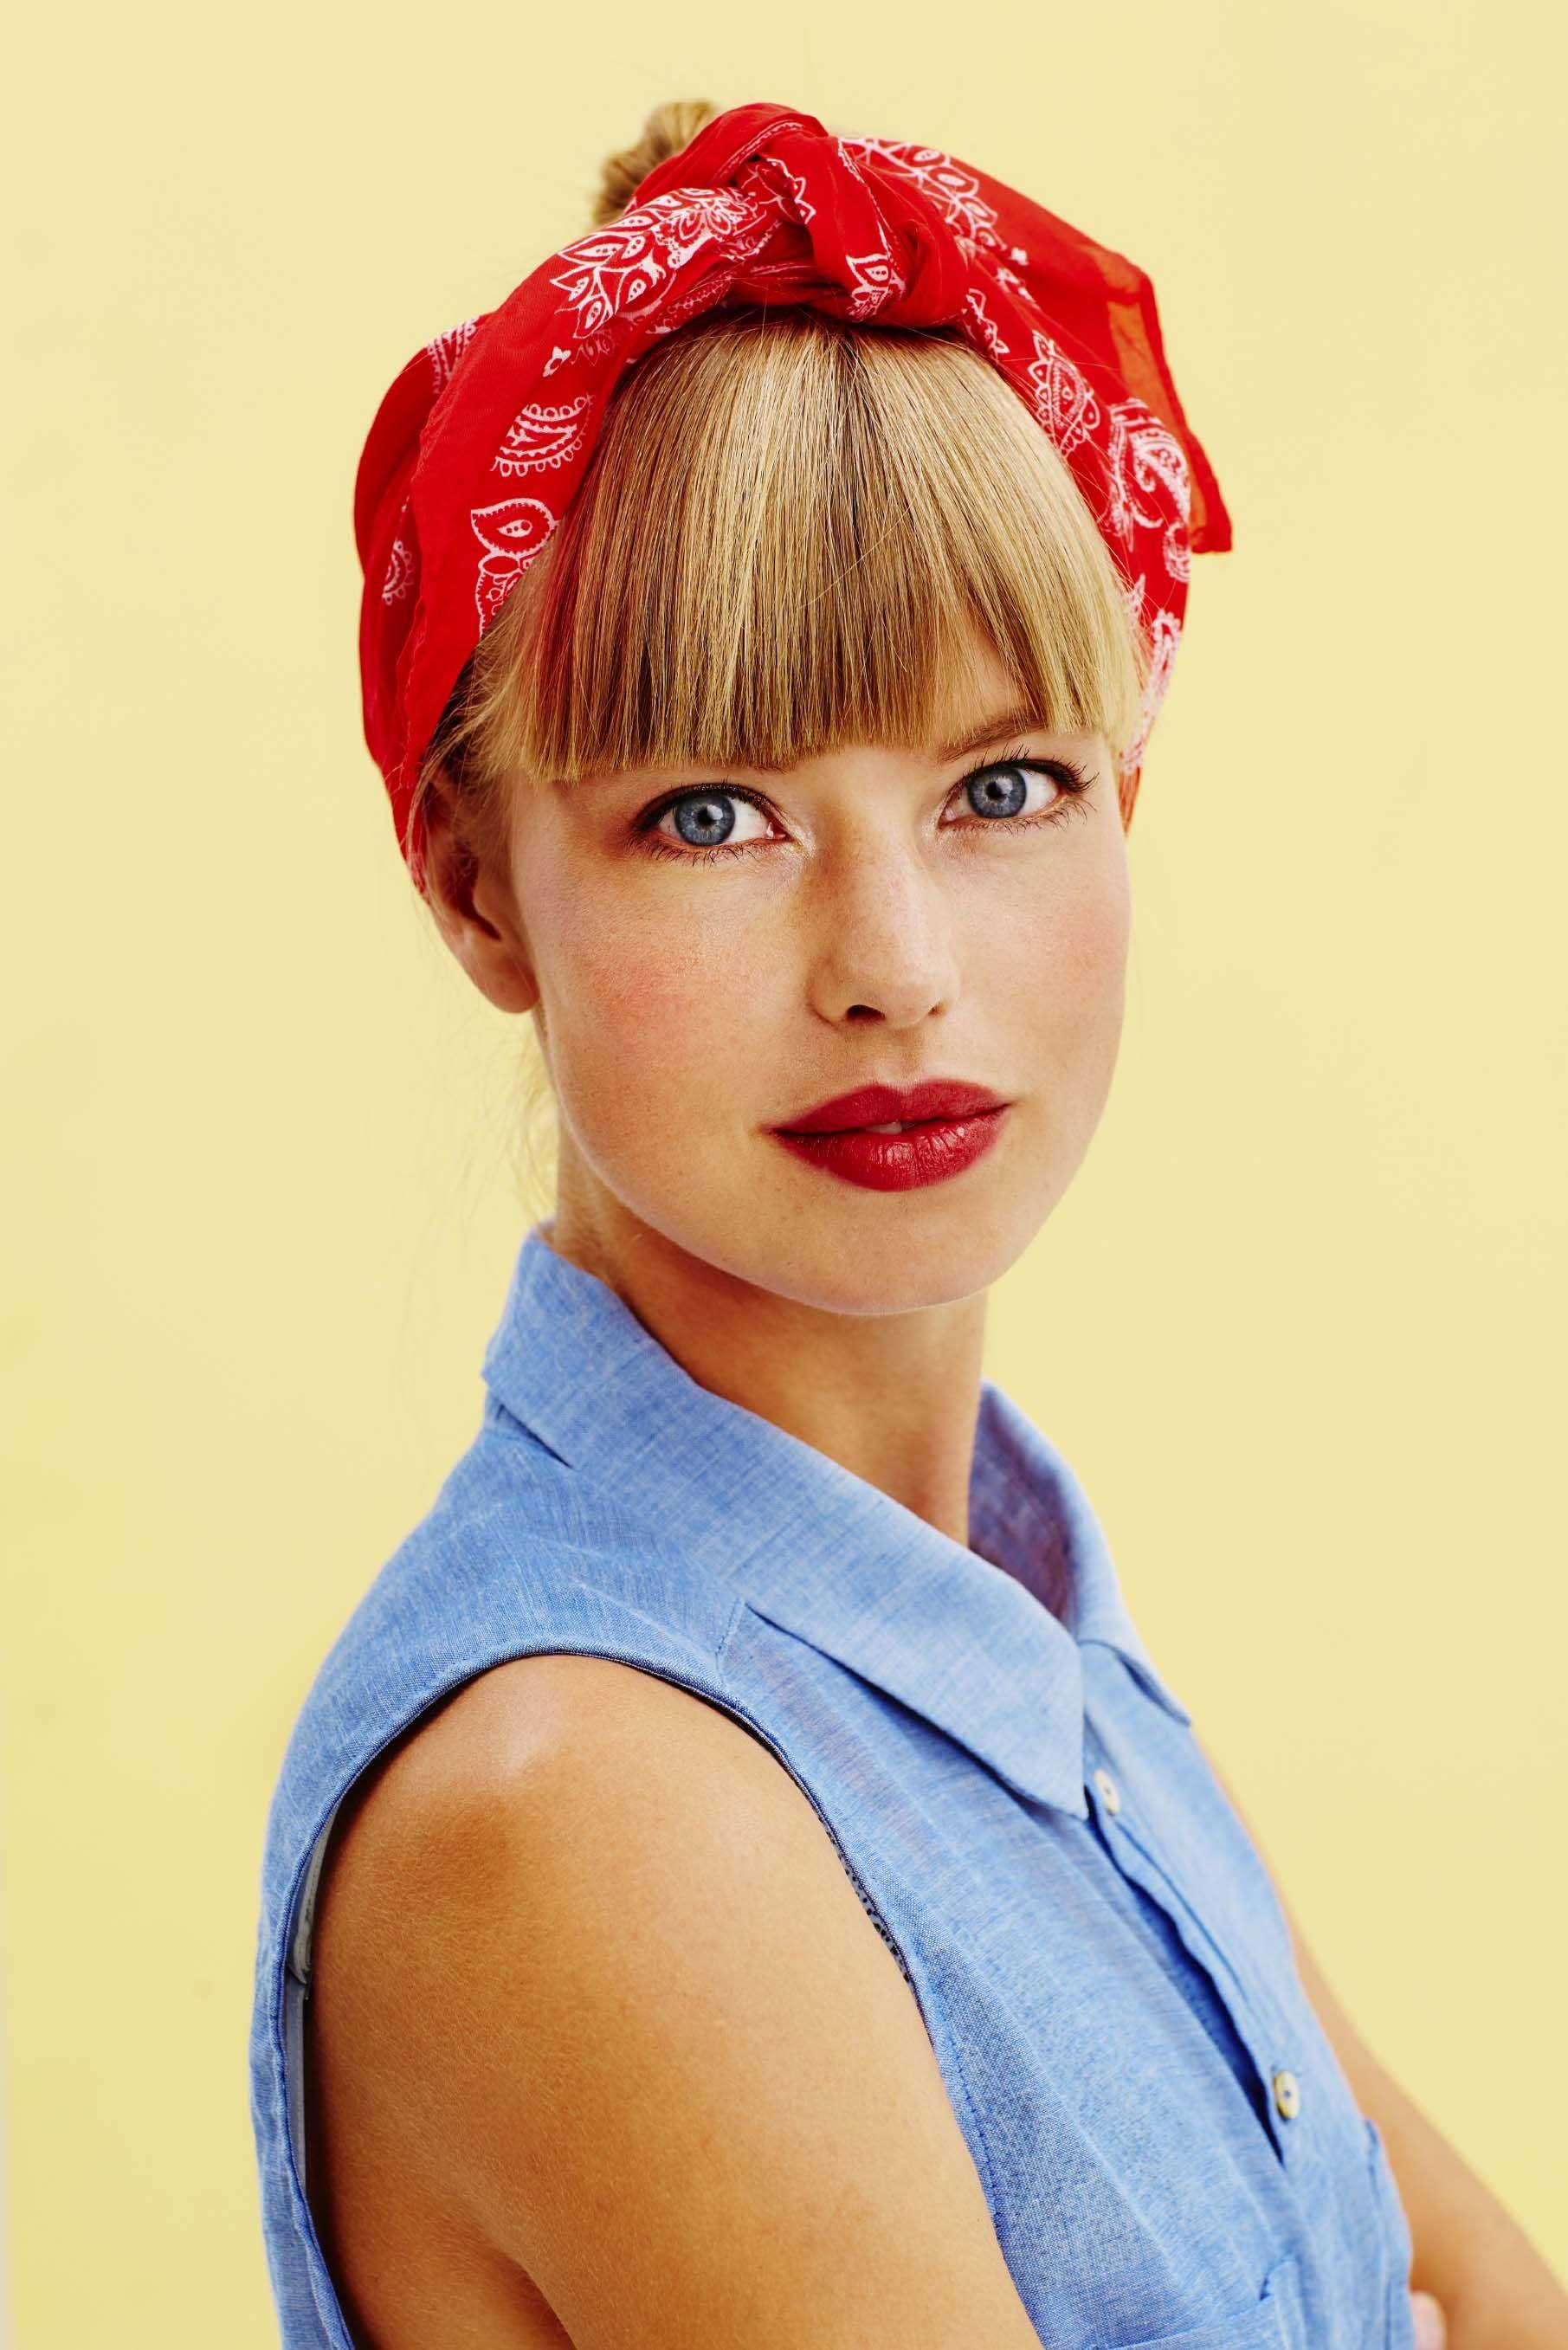 Rockabilly Hairstyles: 11 Trademarks of this Charming Vintagey Look